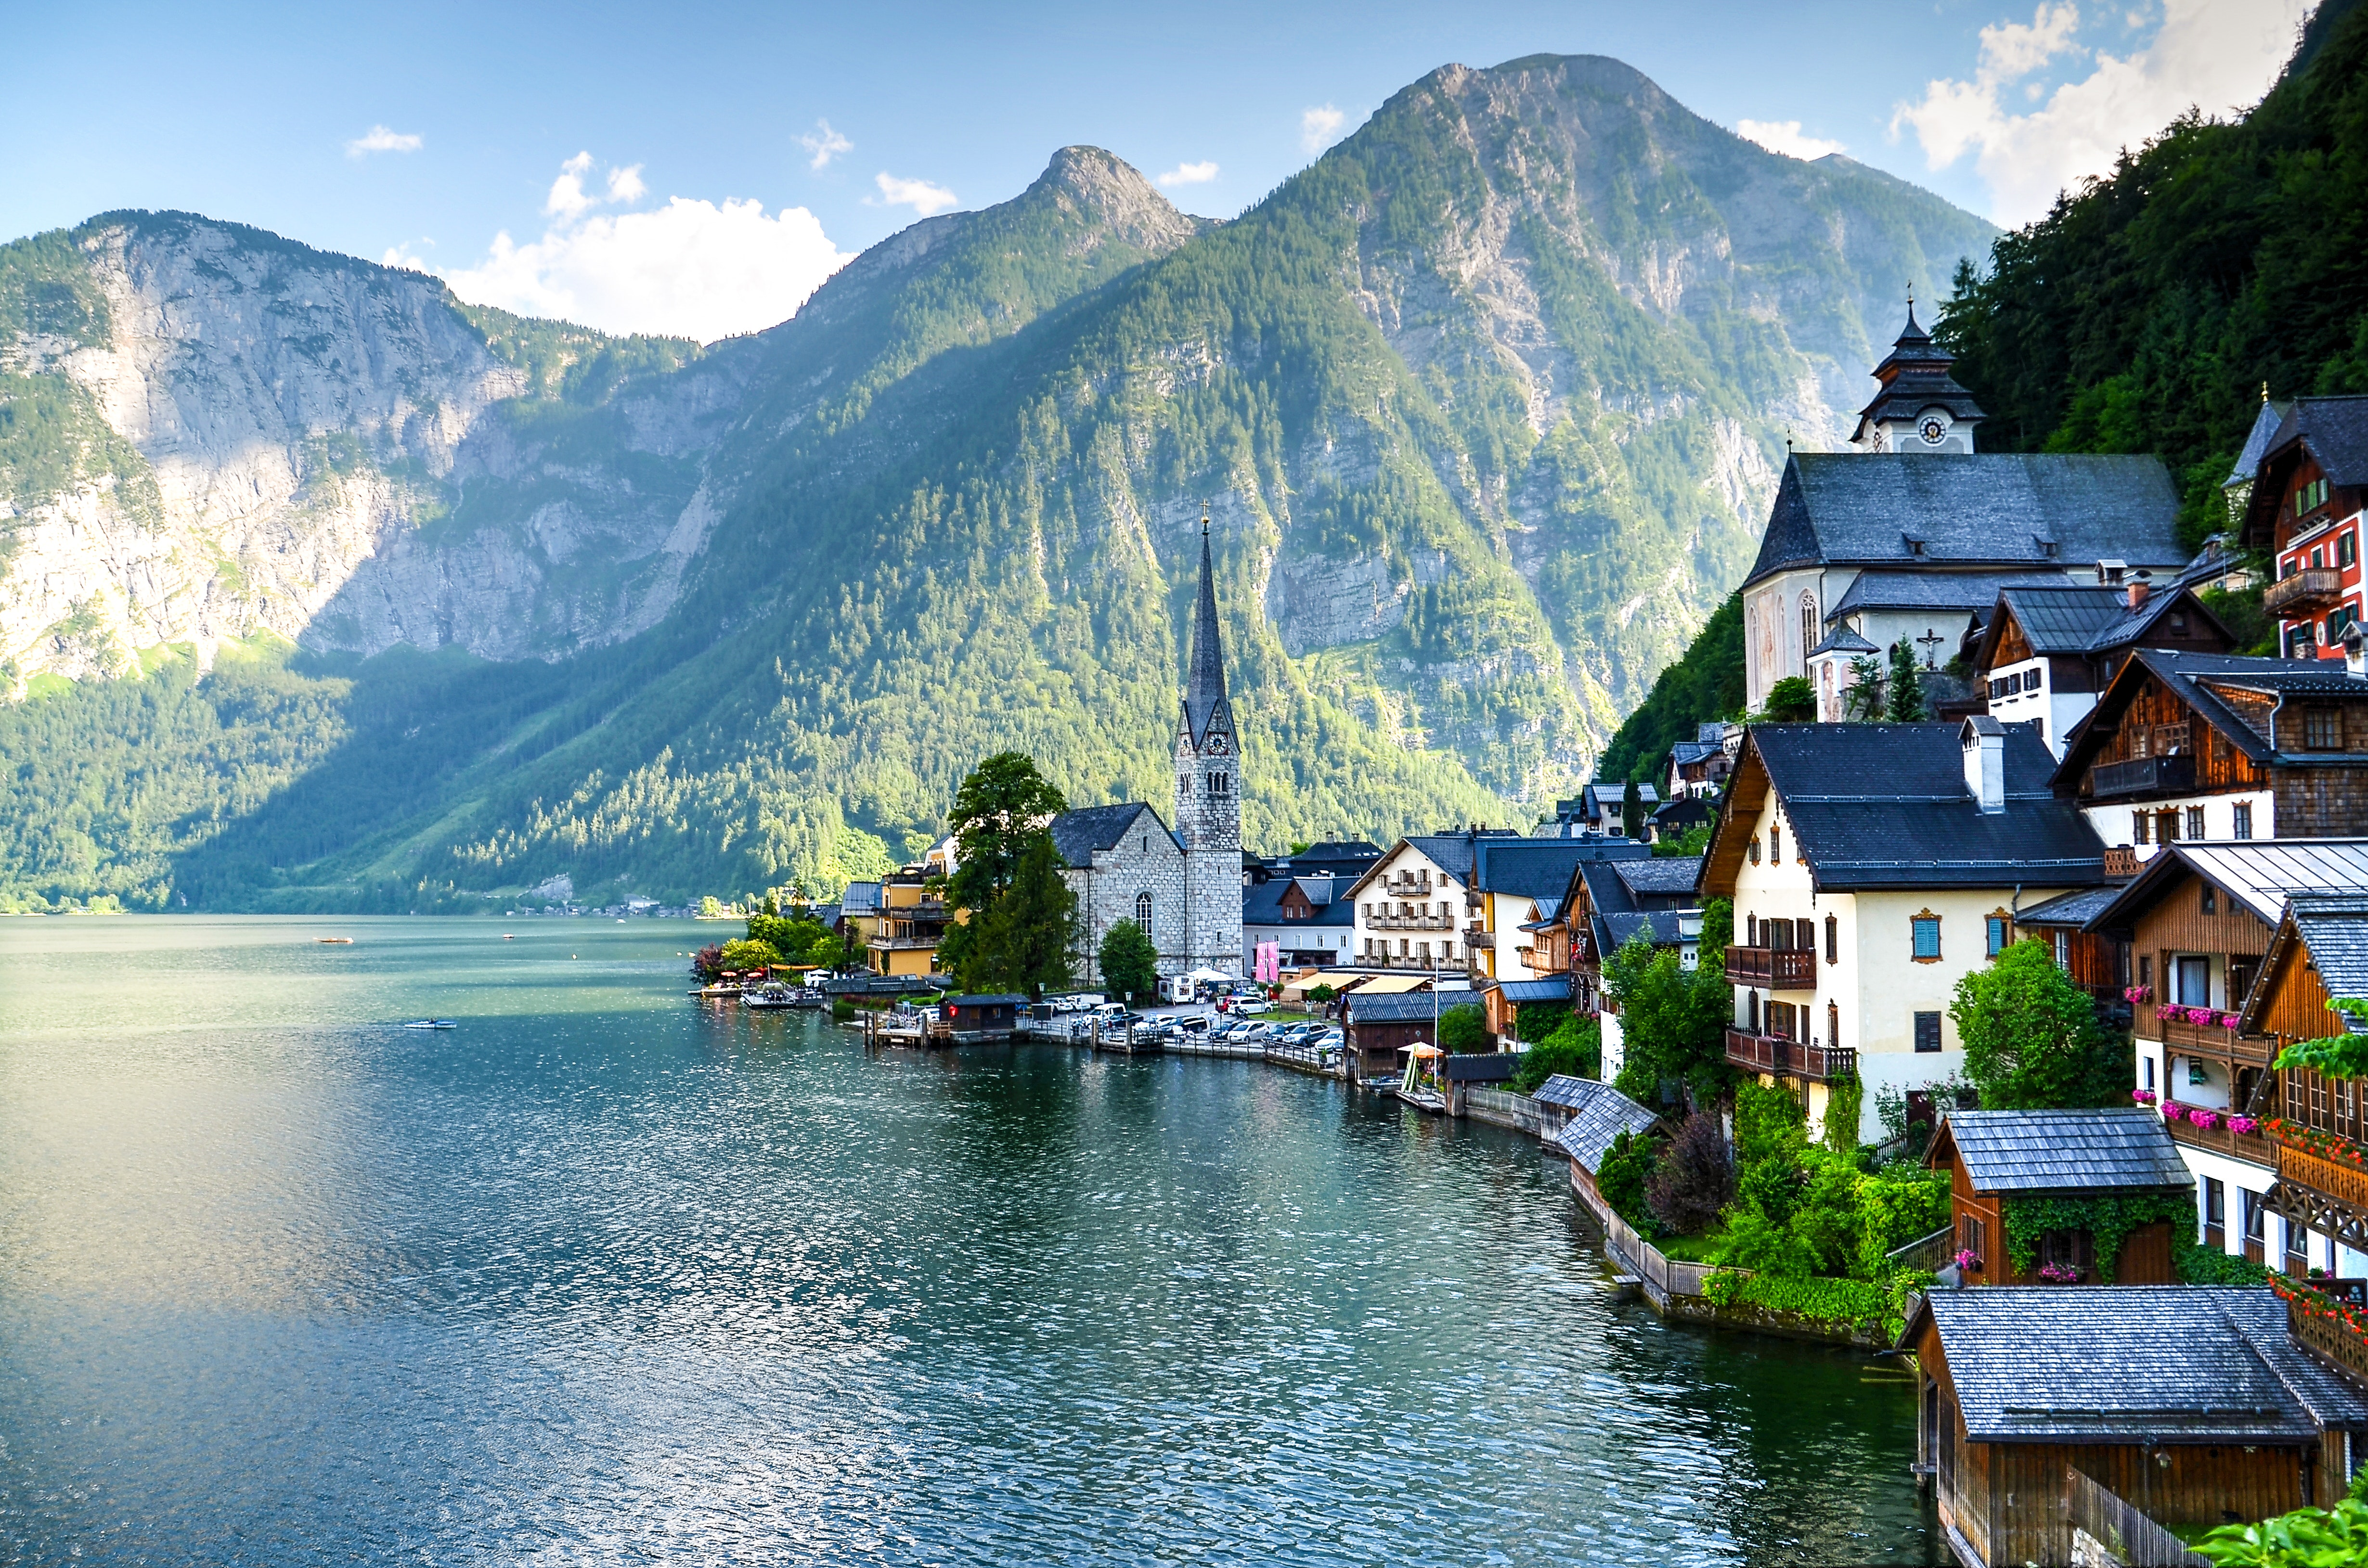 Houses Beside Body of Water and Mountains at Daytime, Trees, Sight, Skyline, Summer, HQ Photo